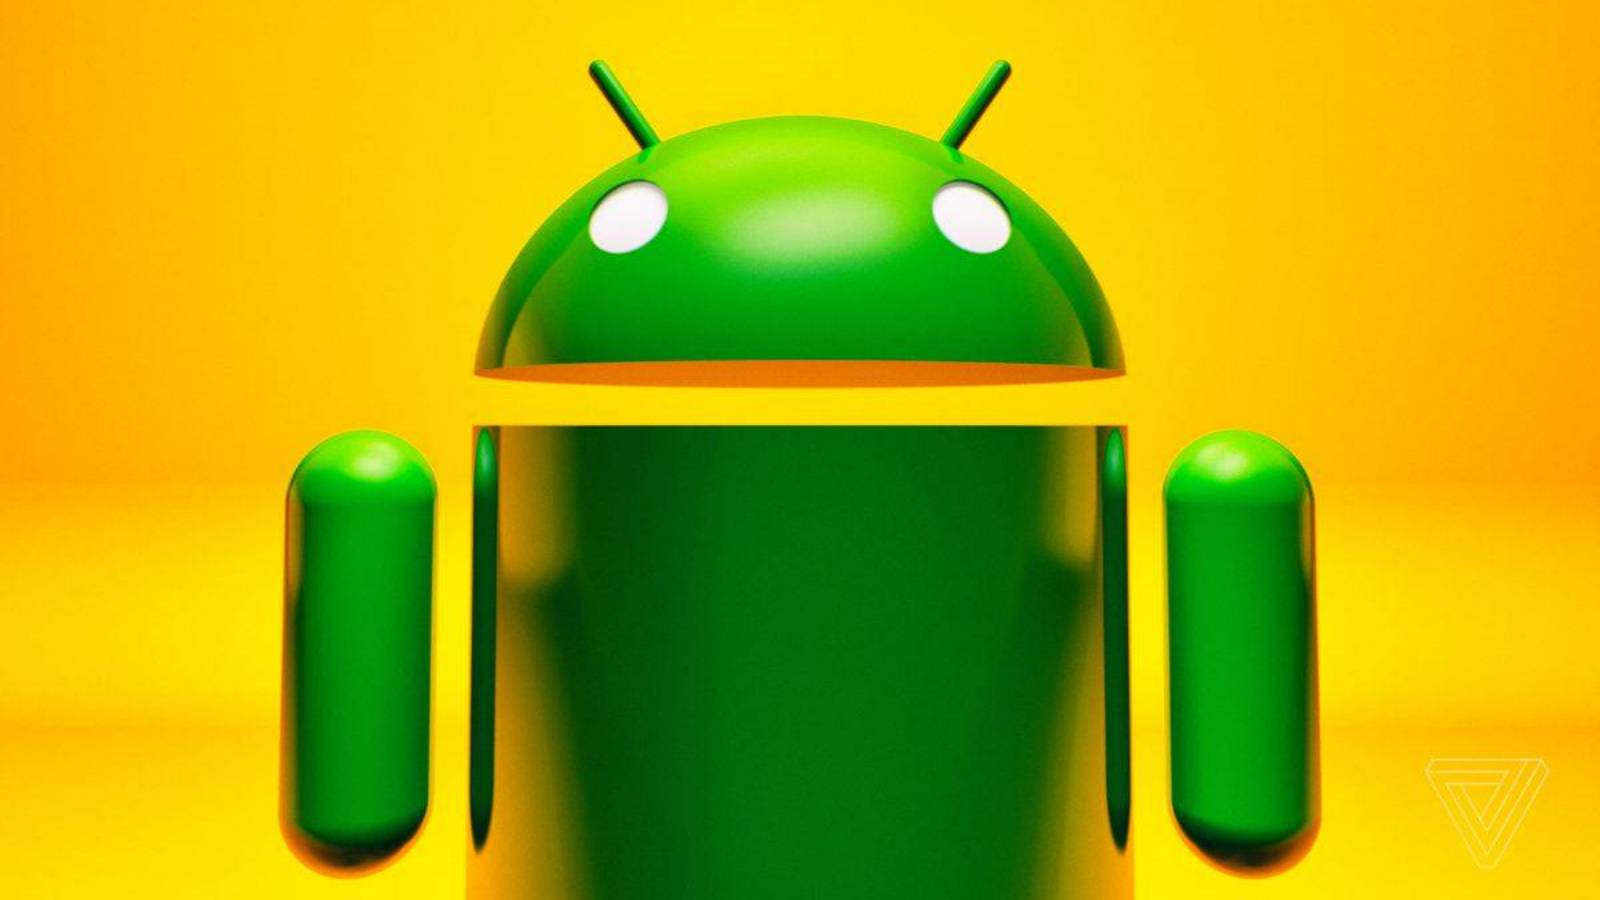 Android intaietate